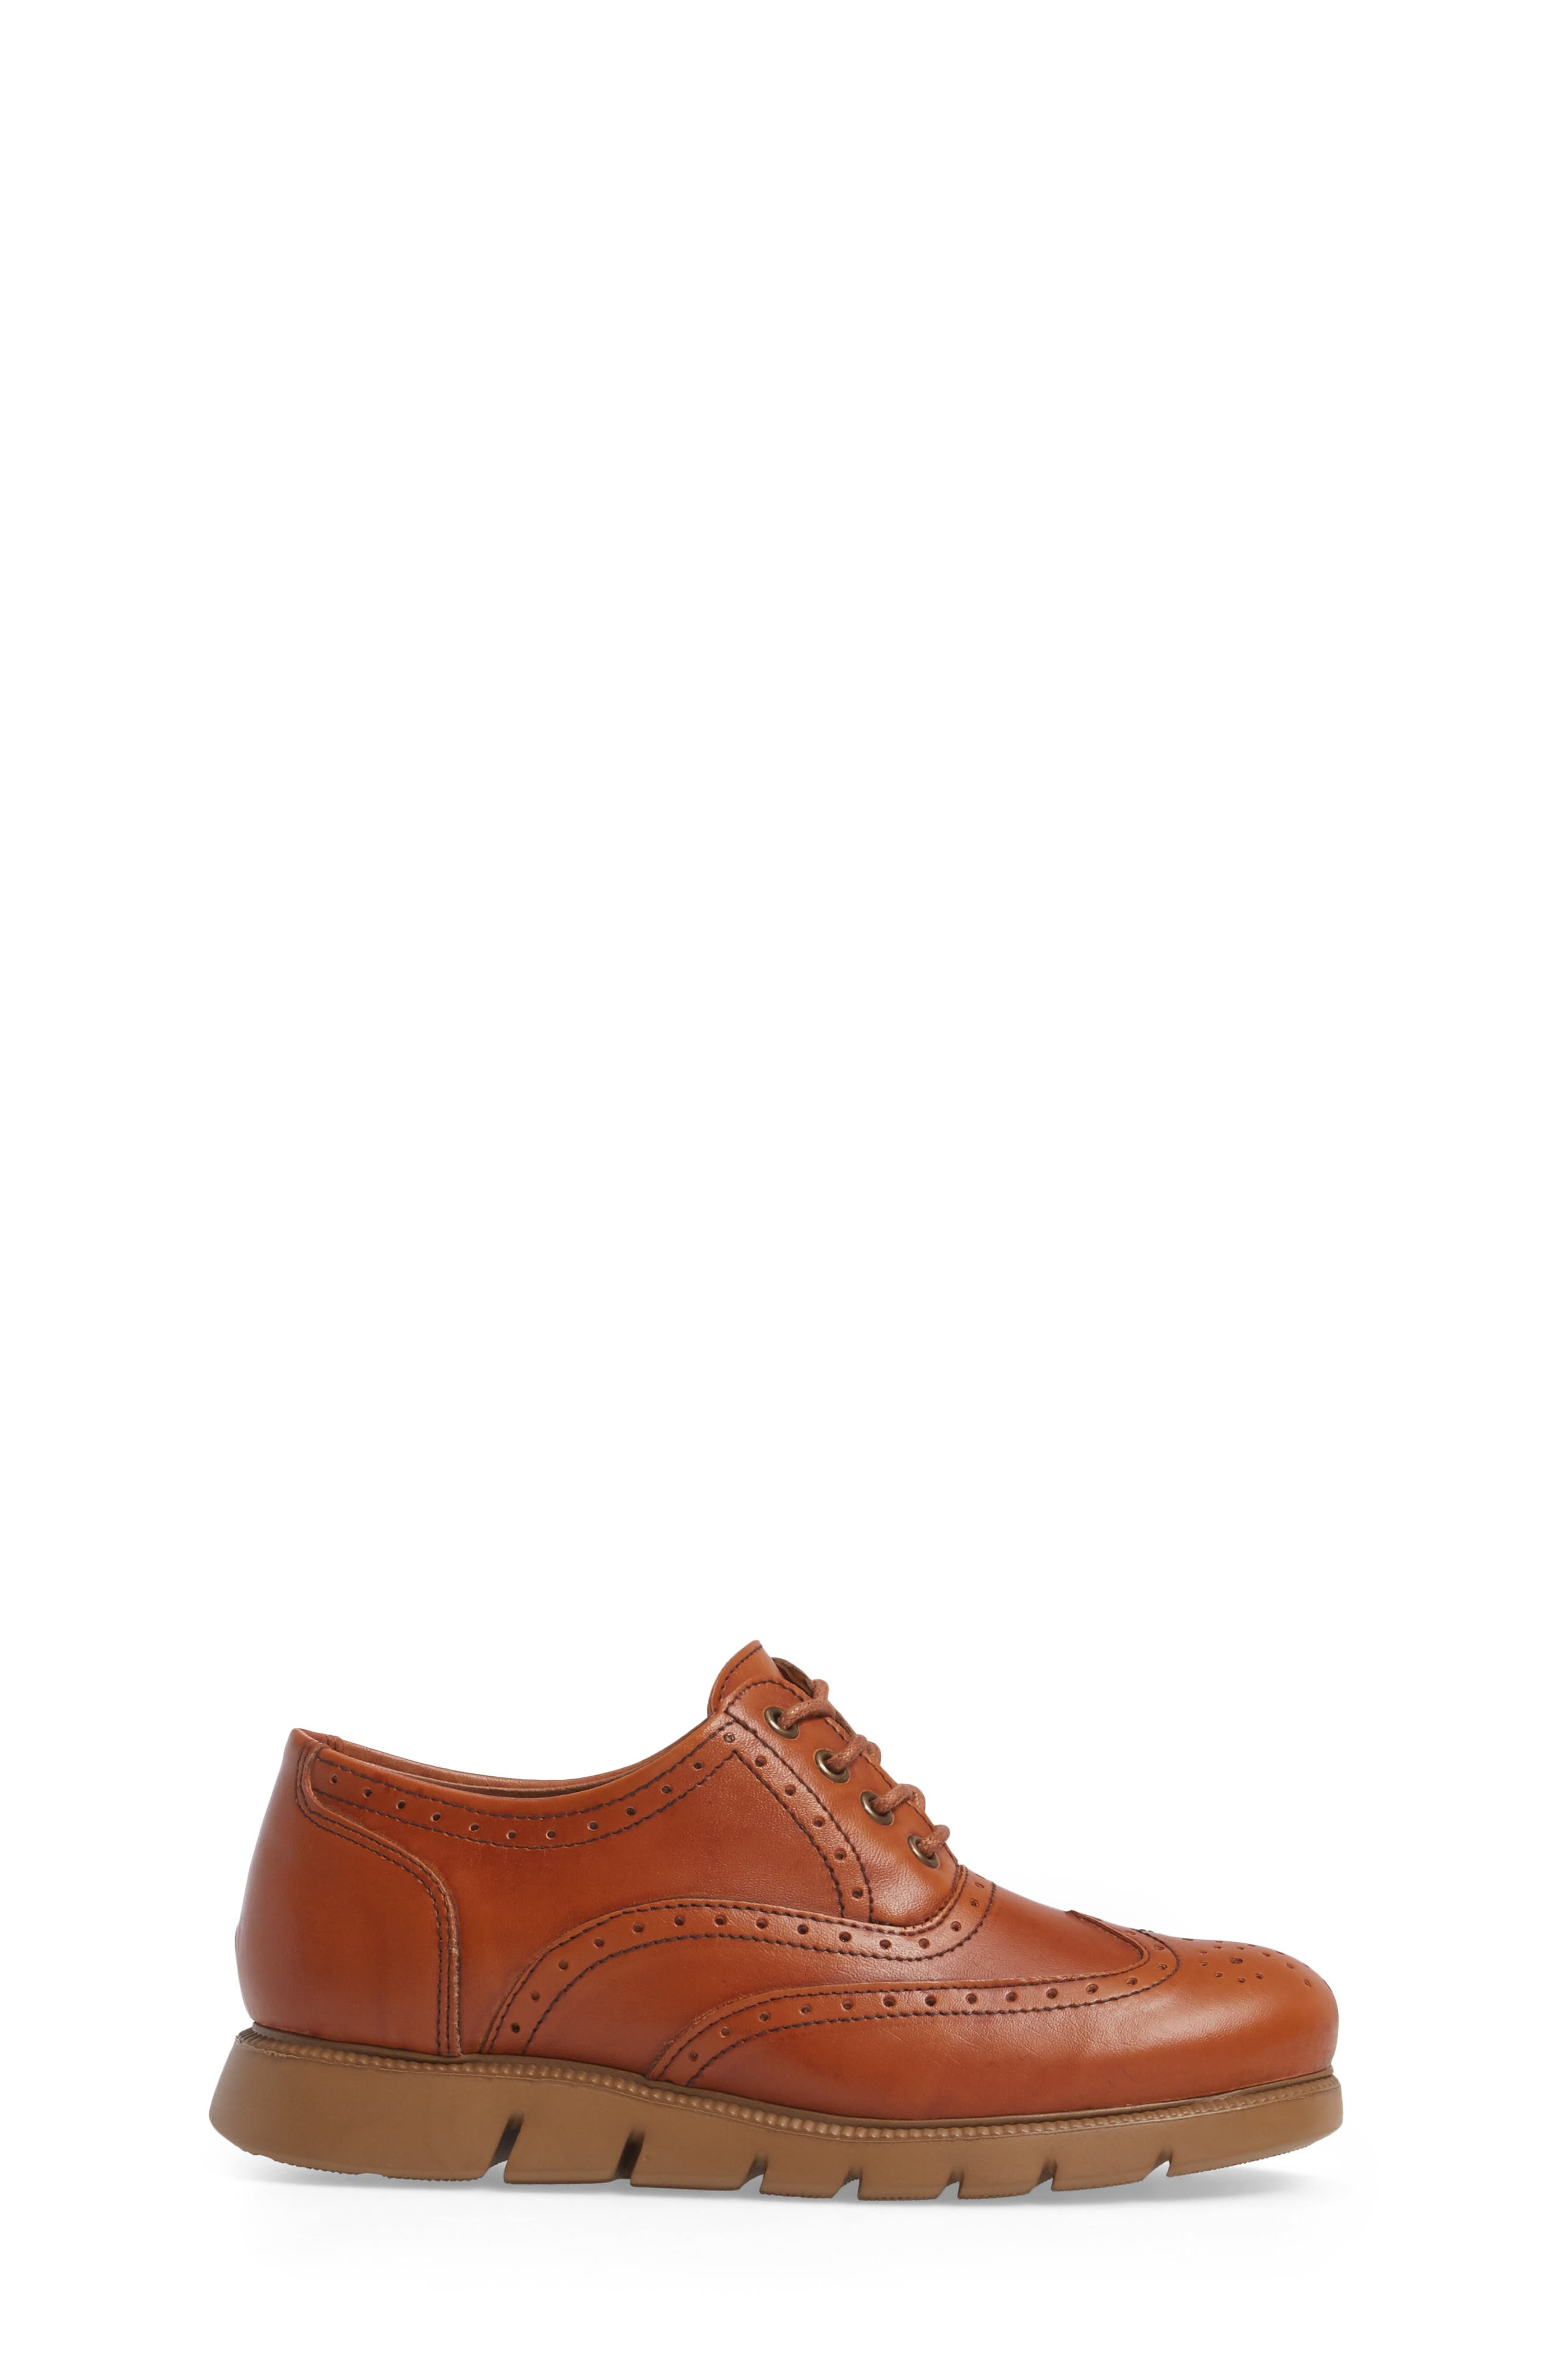 Warble Wingtip Oxford,                             Alternate thumbnail 3, color,                             Naturale